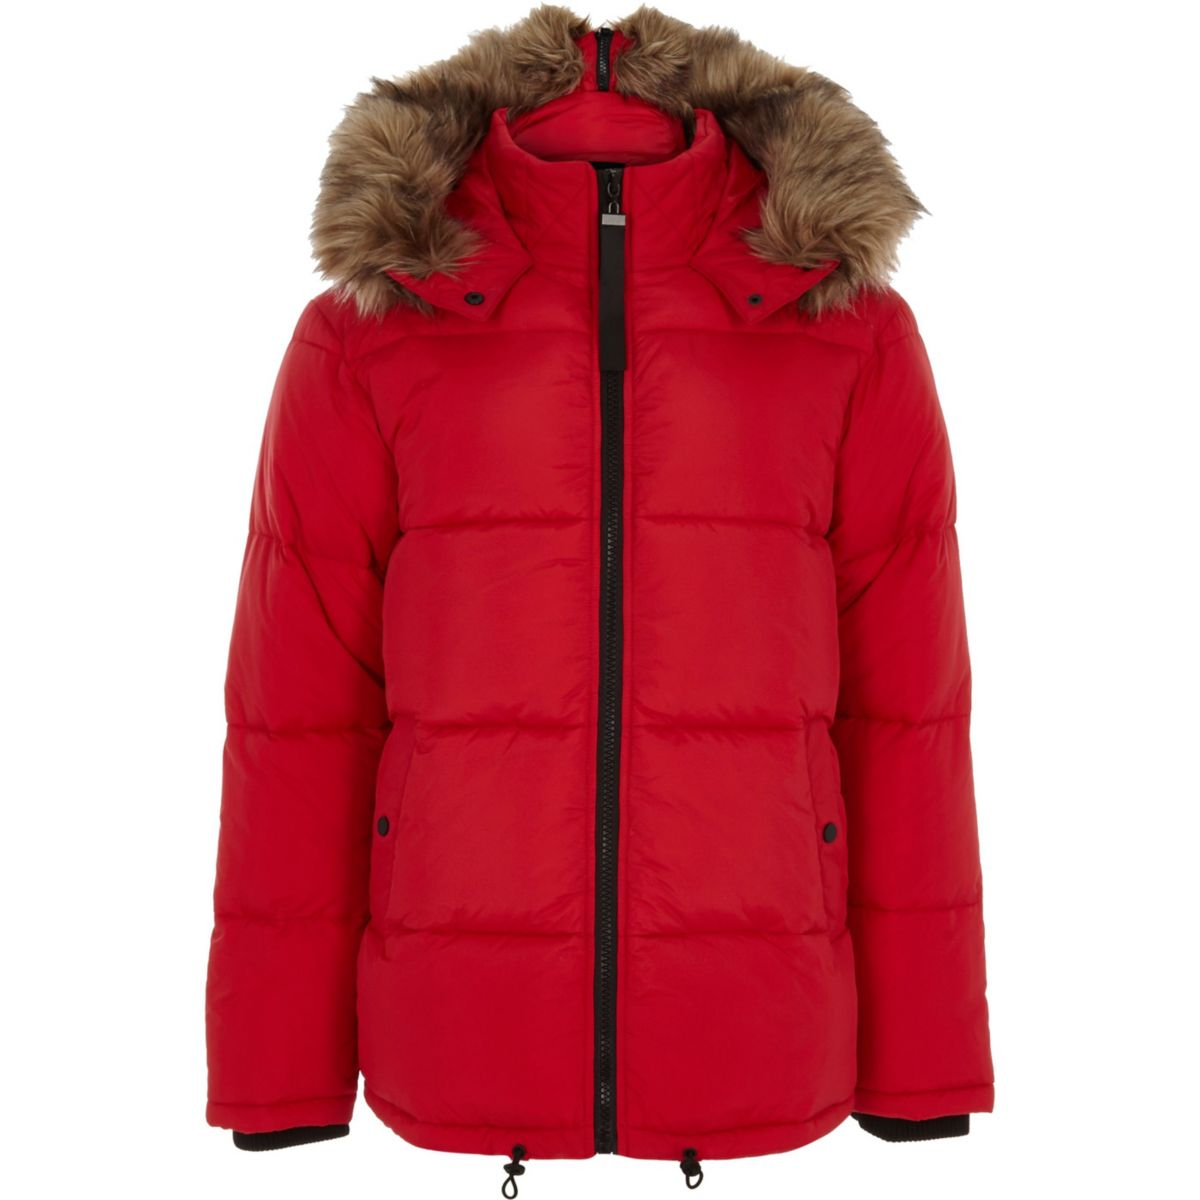 Red Coats & Jackets | Men Coats & Jackets | River Island